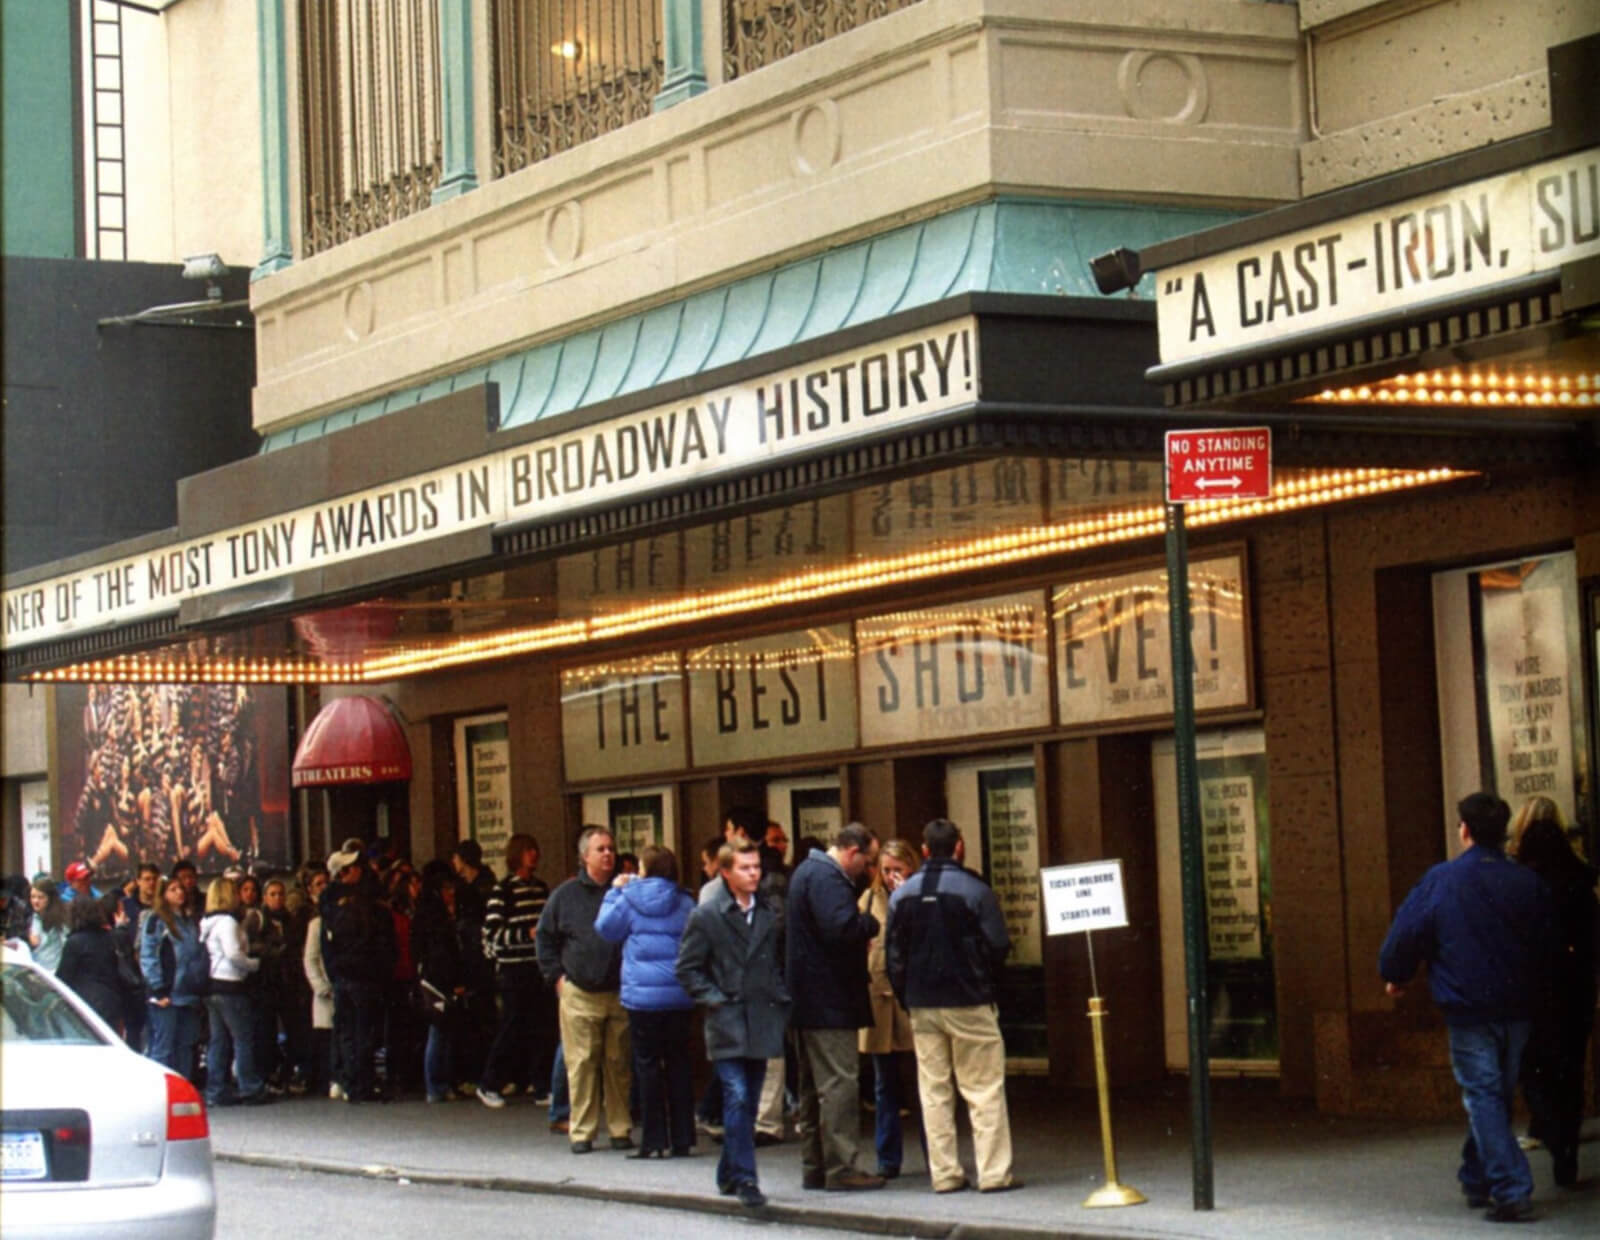 A large crowd is in line for the St. James Box Office to get tickets to The Producers